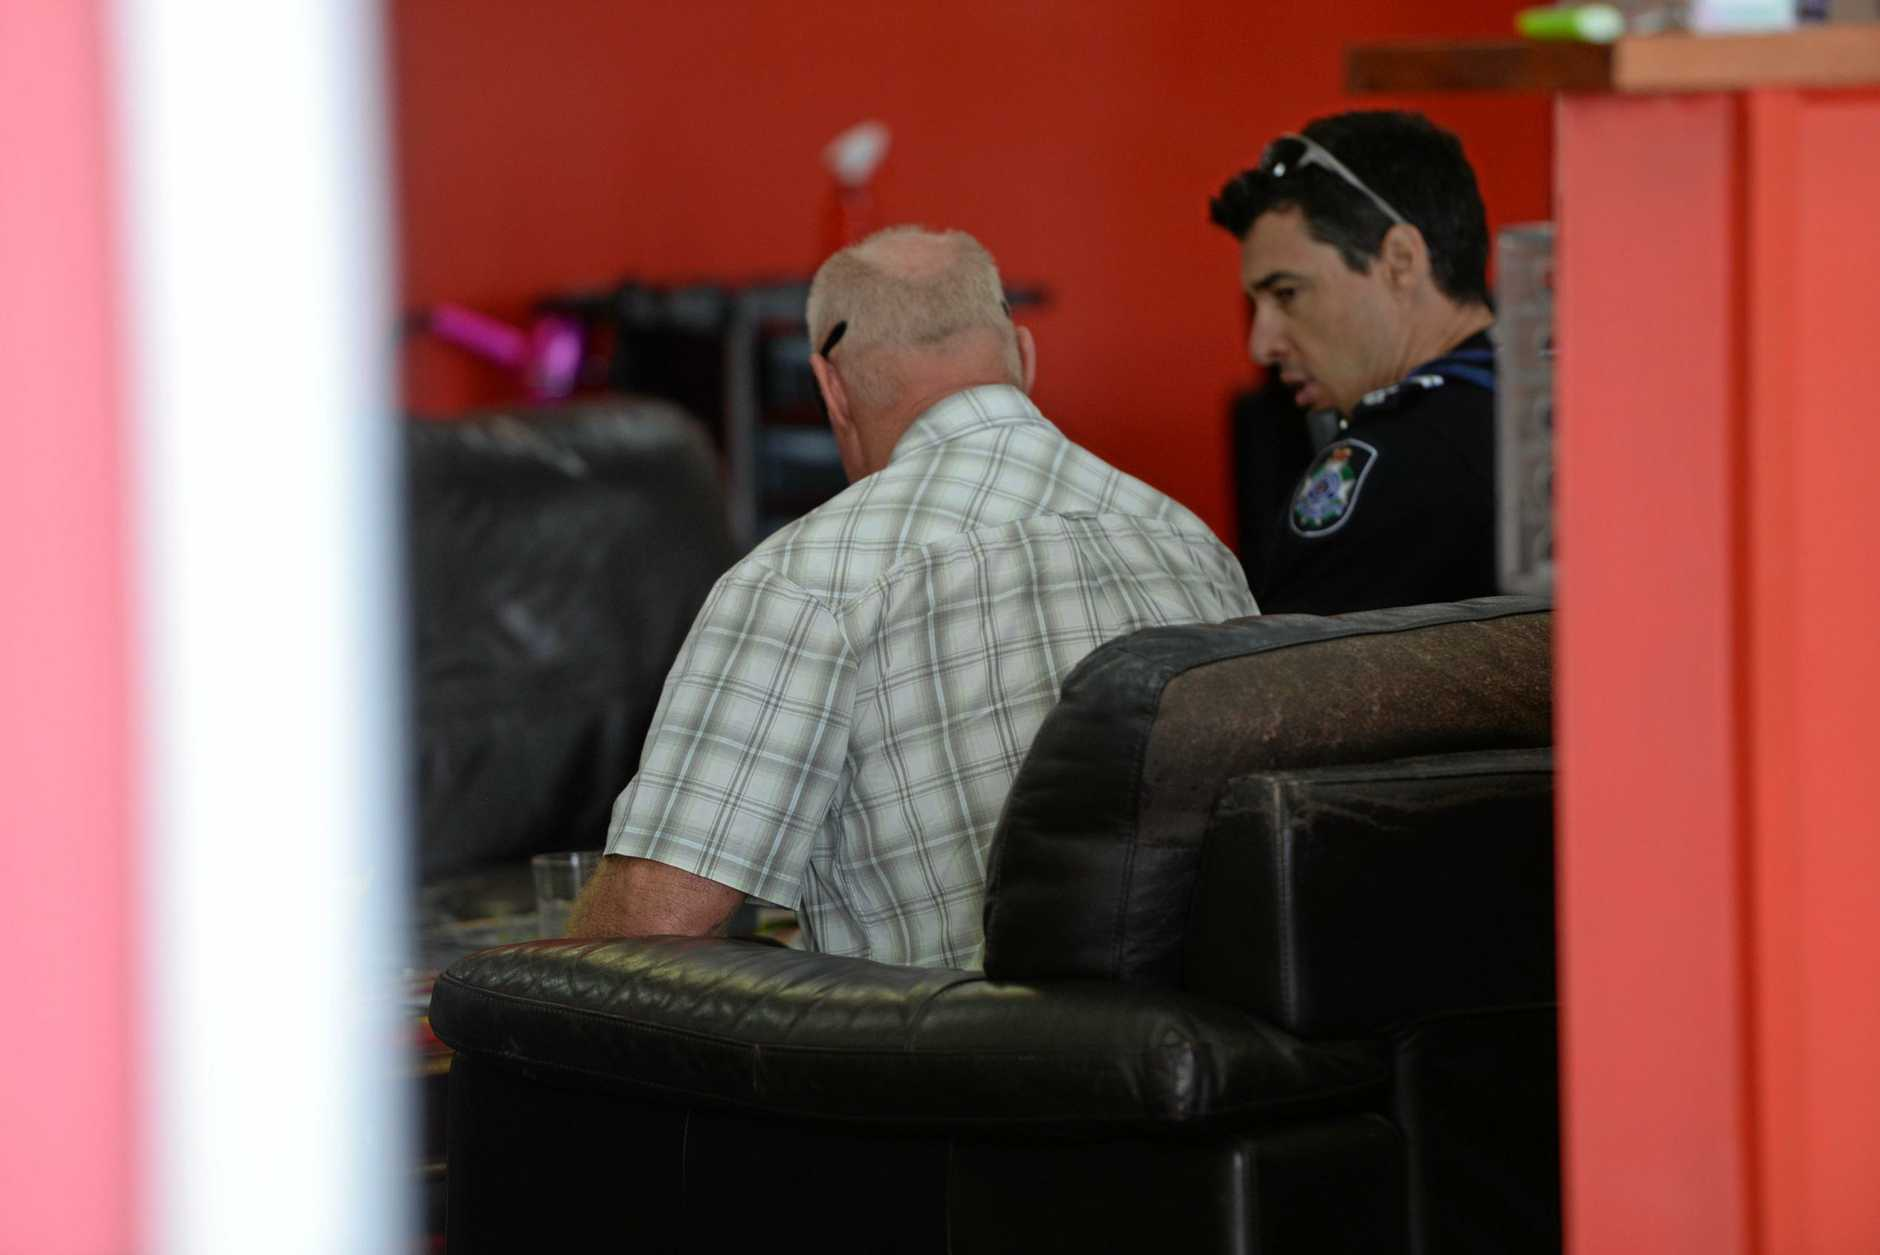 POLICE INVESTIGATING: Graeme Raines gives a statement to police inside Zest hair salon where he took refuge after being attacked on Woongarra St this morning.